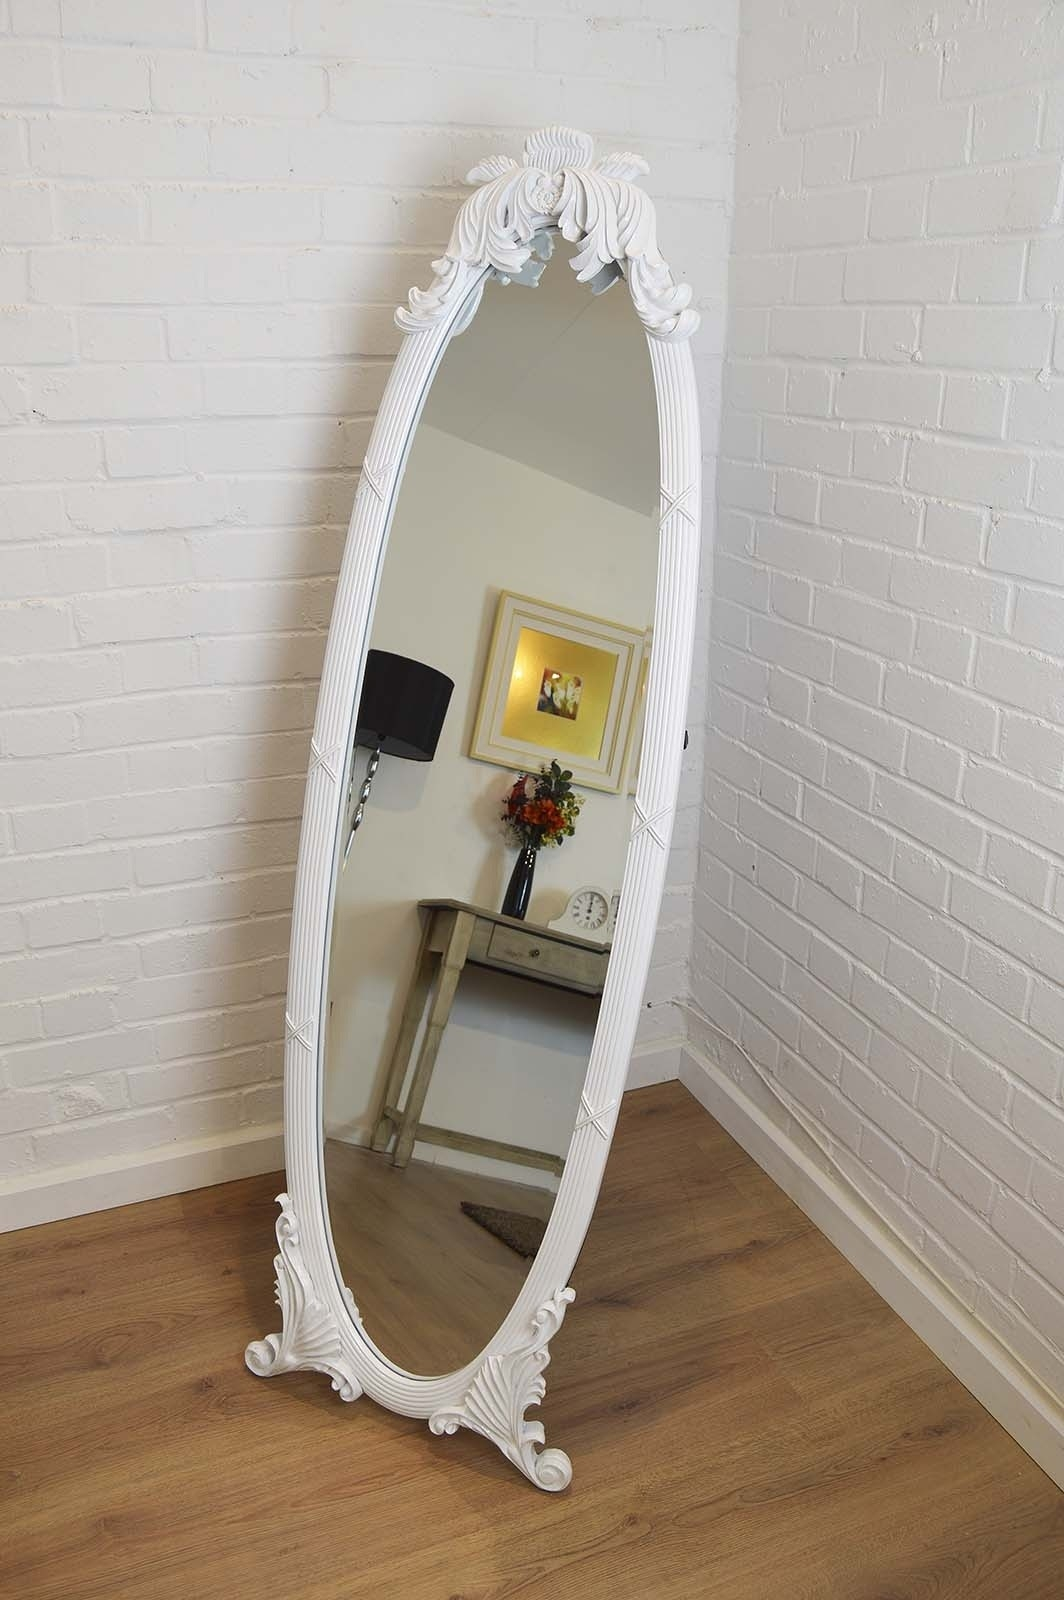 Sofa Gumtree Paignton 15 Collection Of Free Standing Shabby Chic Mirror Mirror Ideas